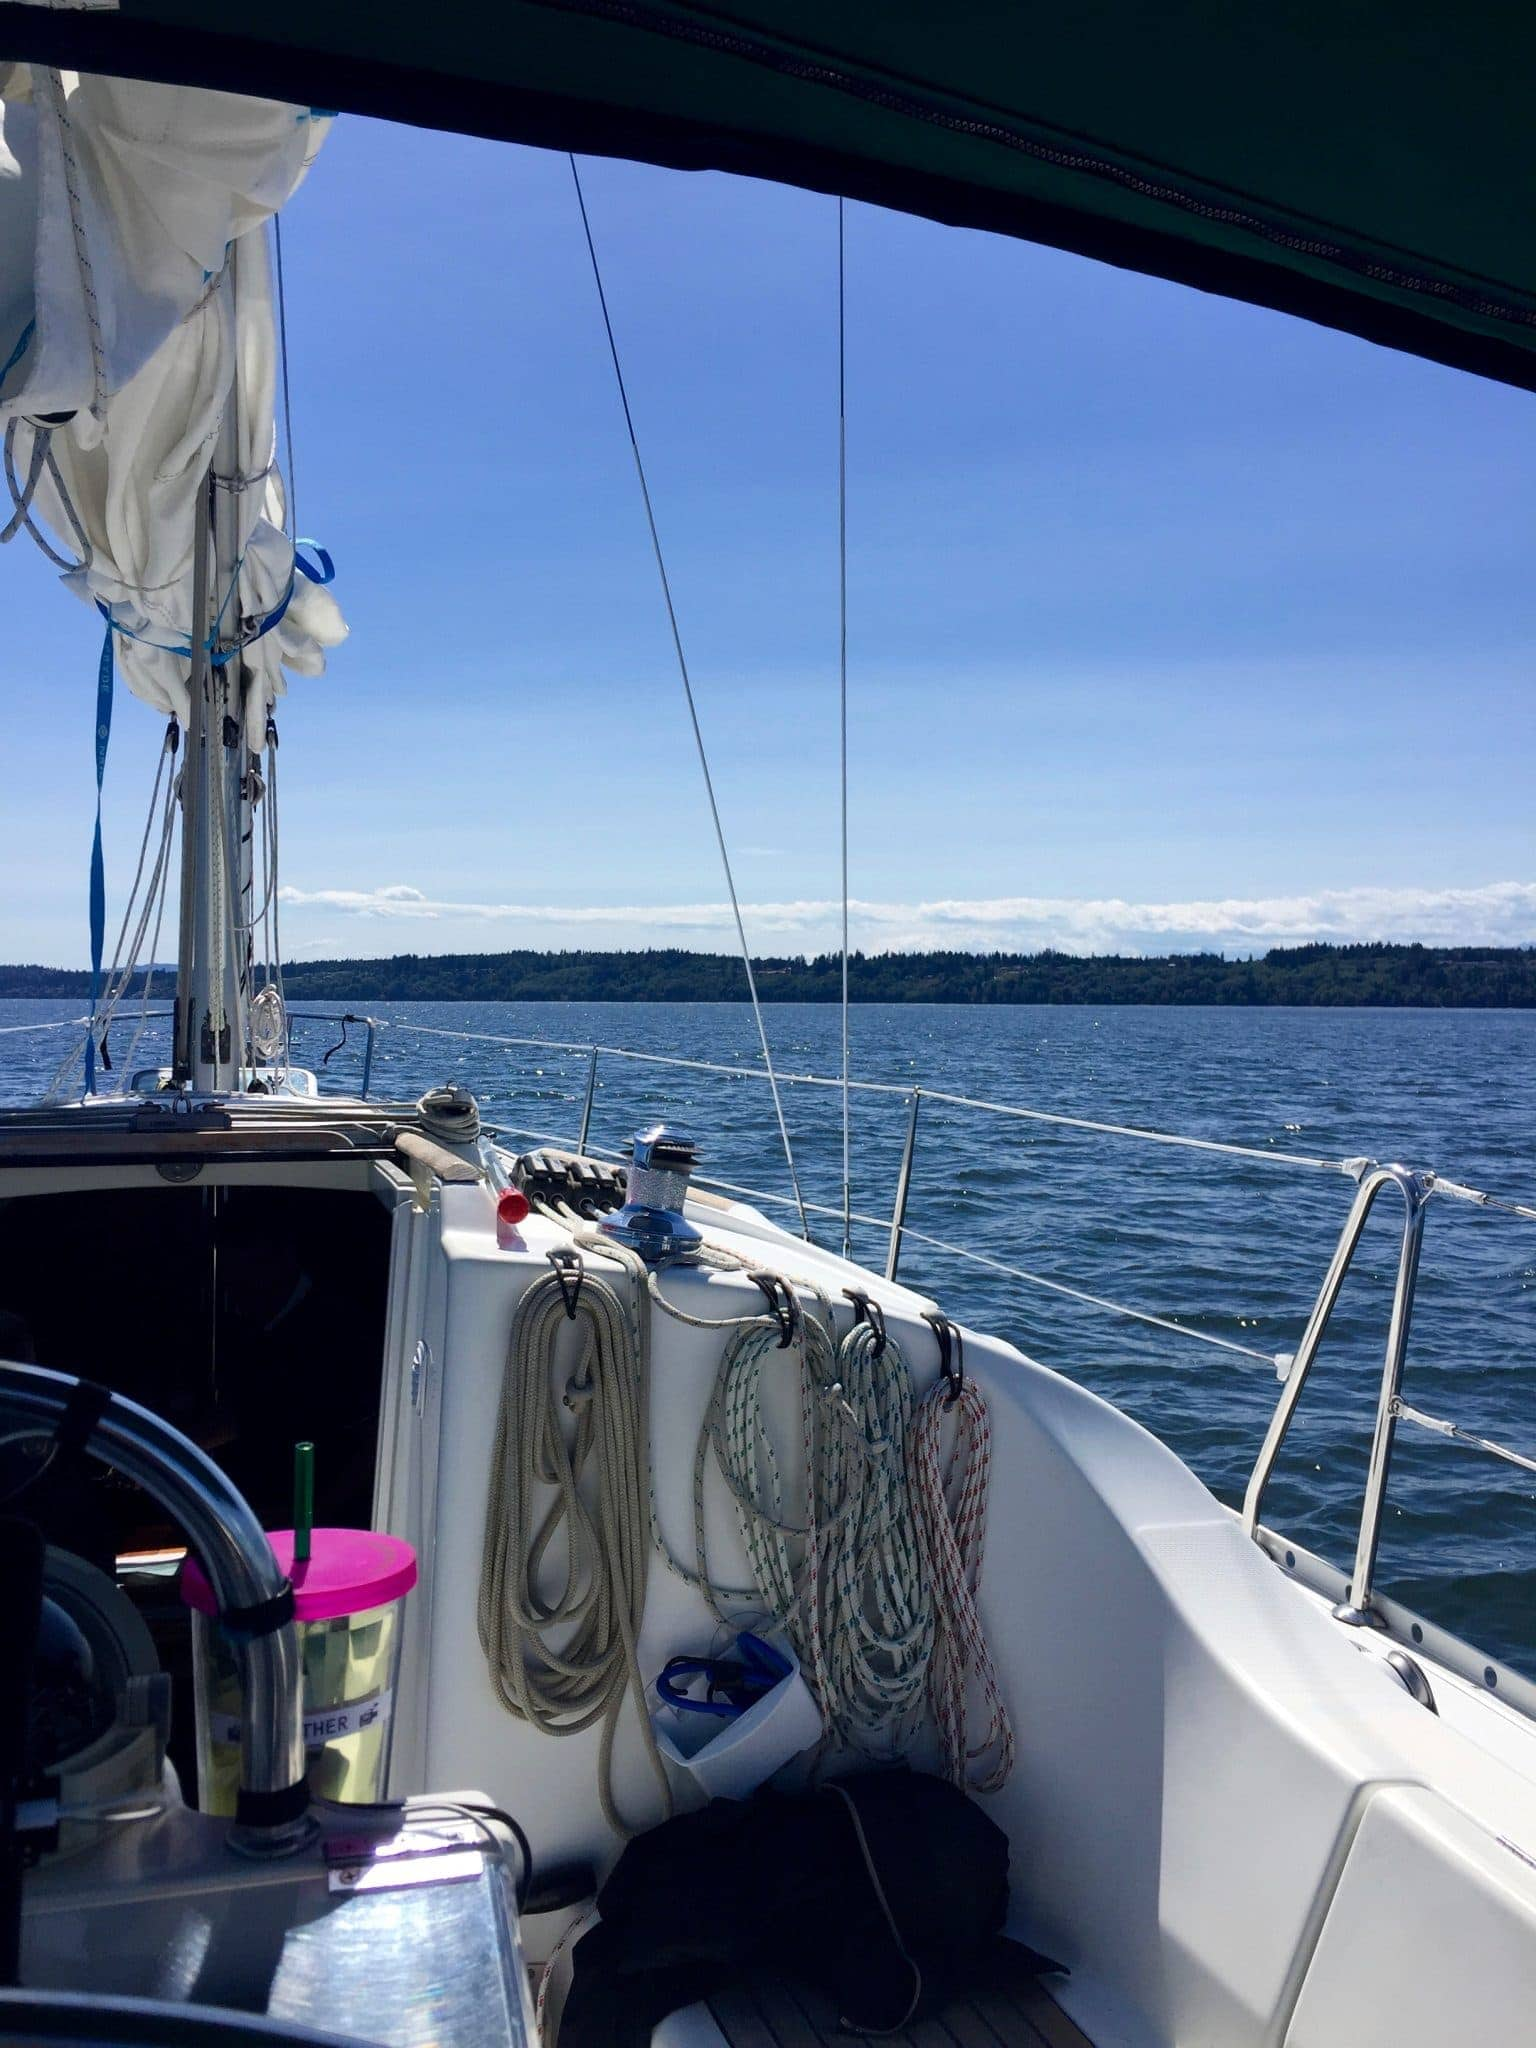 Motoring to Poulsbo after the rescue attempt